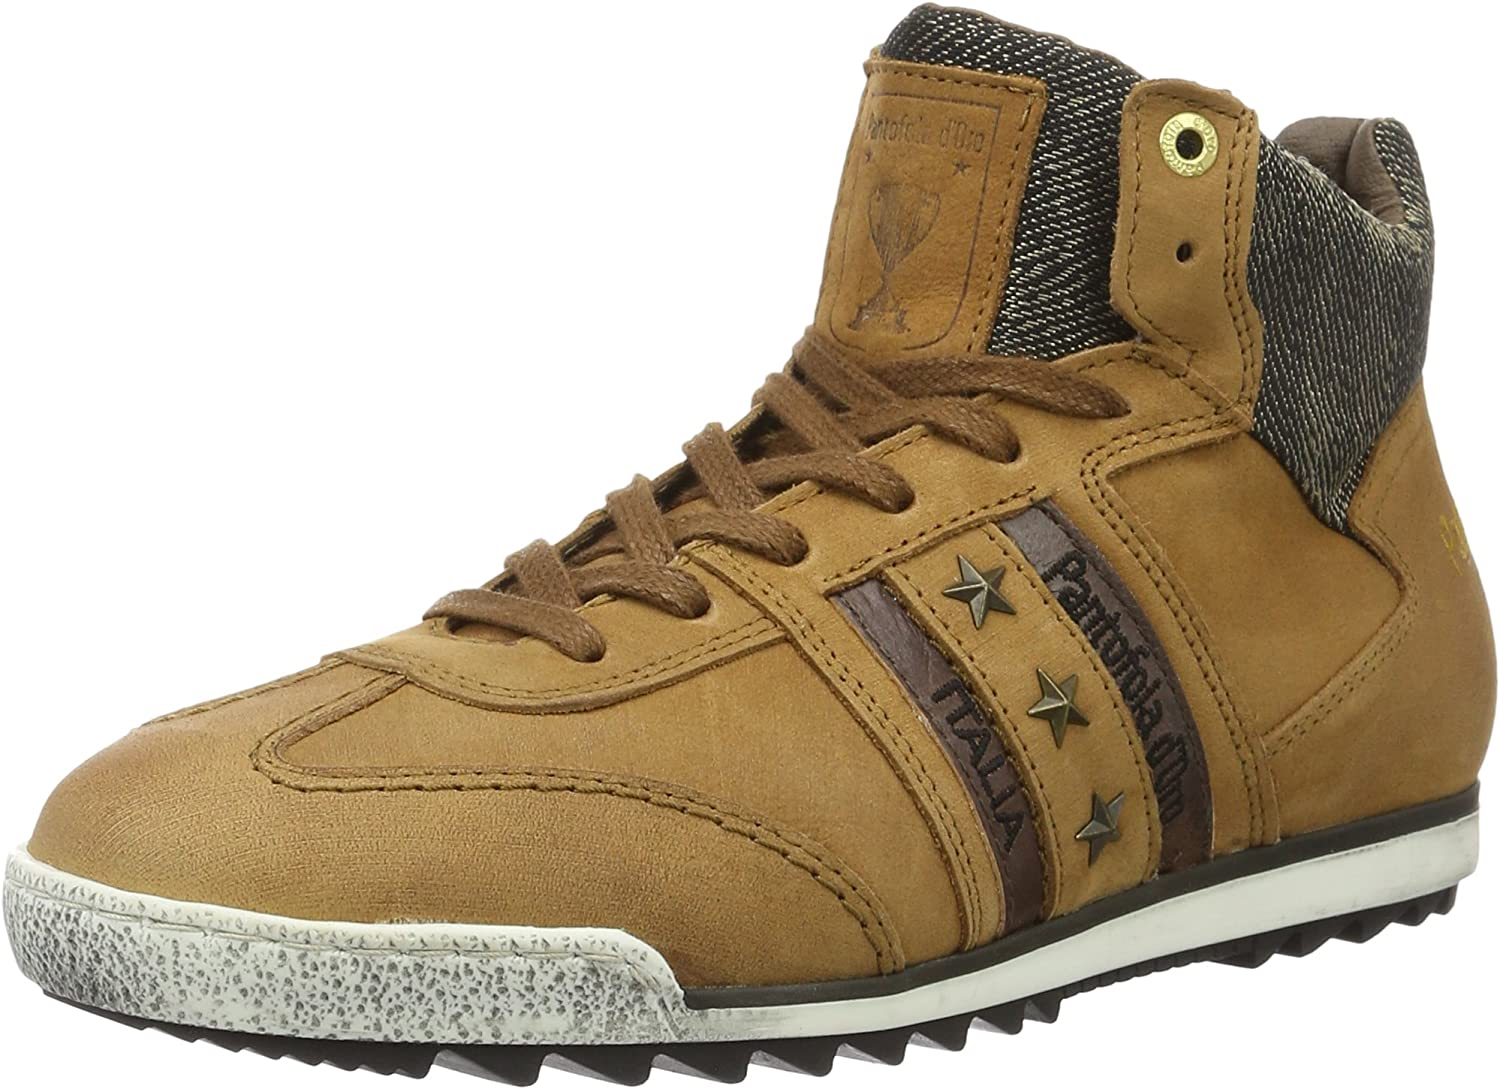 Pantofola d'gold Imola Jeans men Mid, Men's Low-Top Sneakers